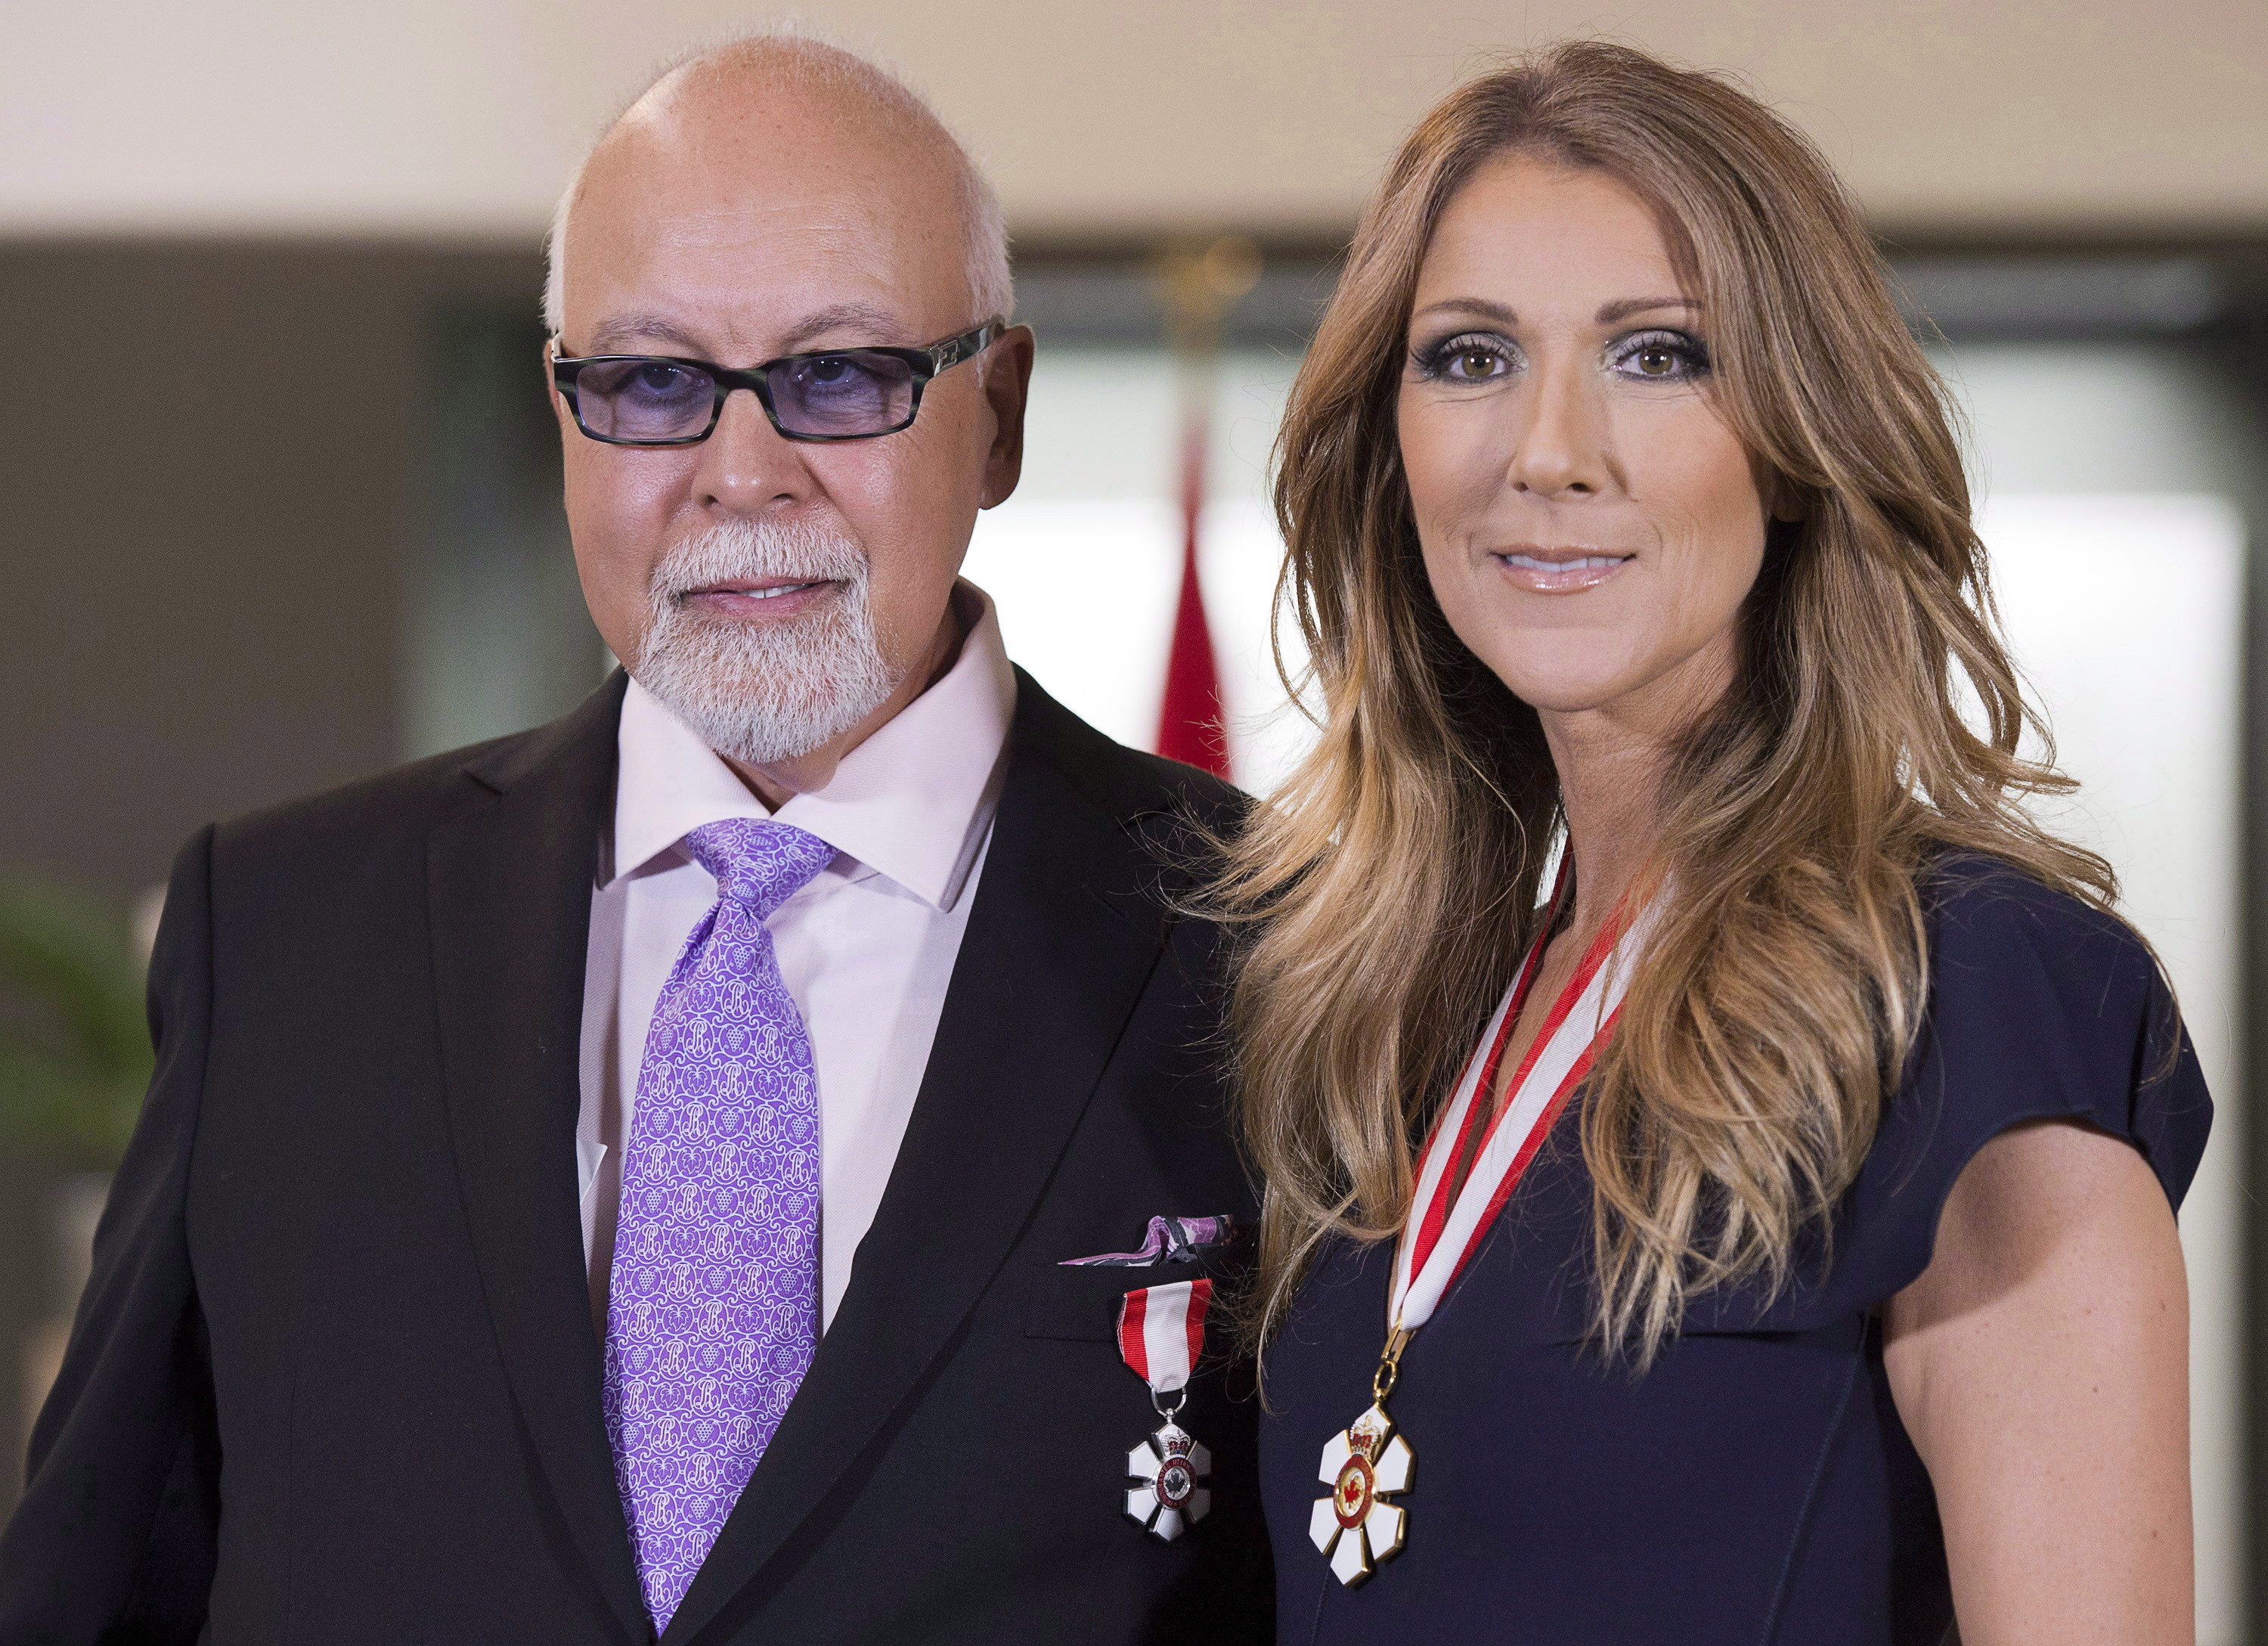 Celine Dion and husband Rene Angelil pose for photos after being decorated with the Order of Canada in Quebec City on Friday, July 26, 2013. Angelil, the entertainment maestro who guided Celine Dion to superstardom and then married her, has died, according to Francine Chaloult, a spokeswoman for Dion. THE CANADIAN PRESS/Jacques Boissinot